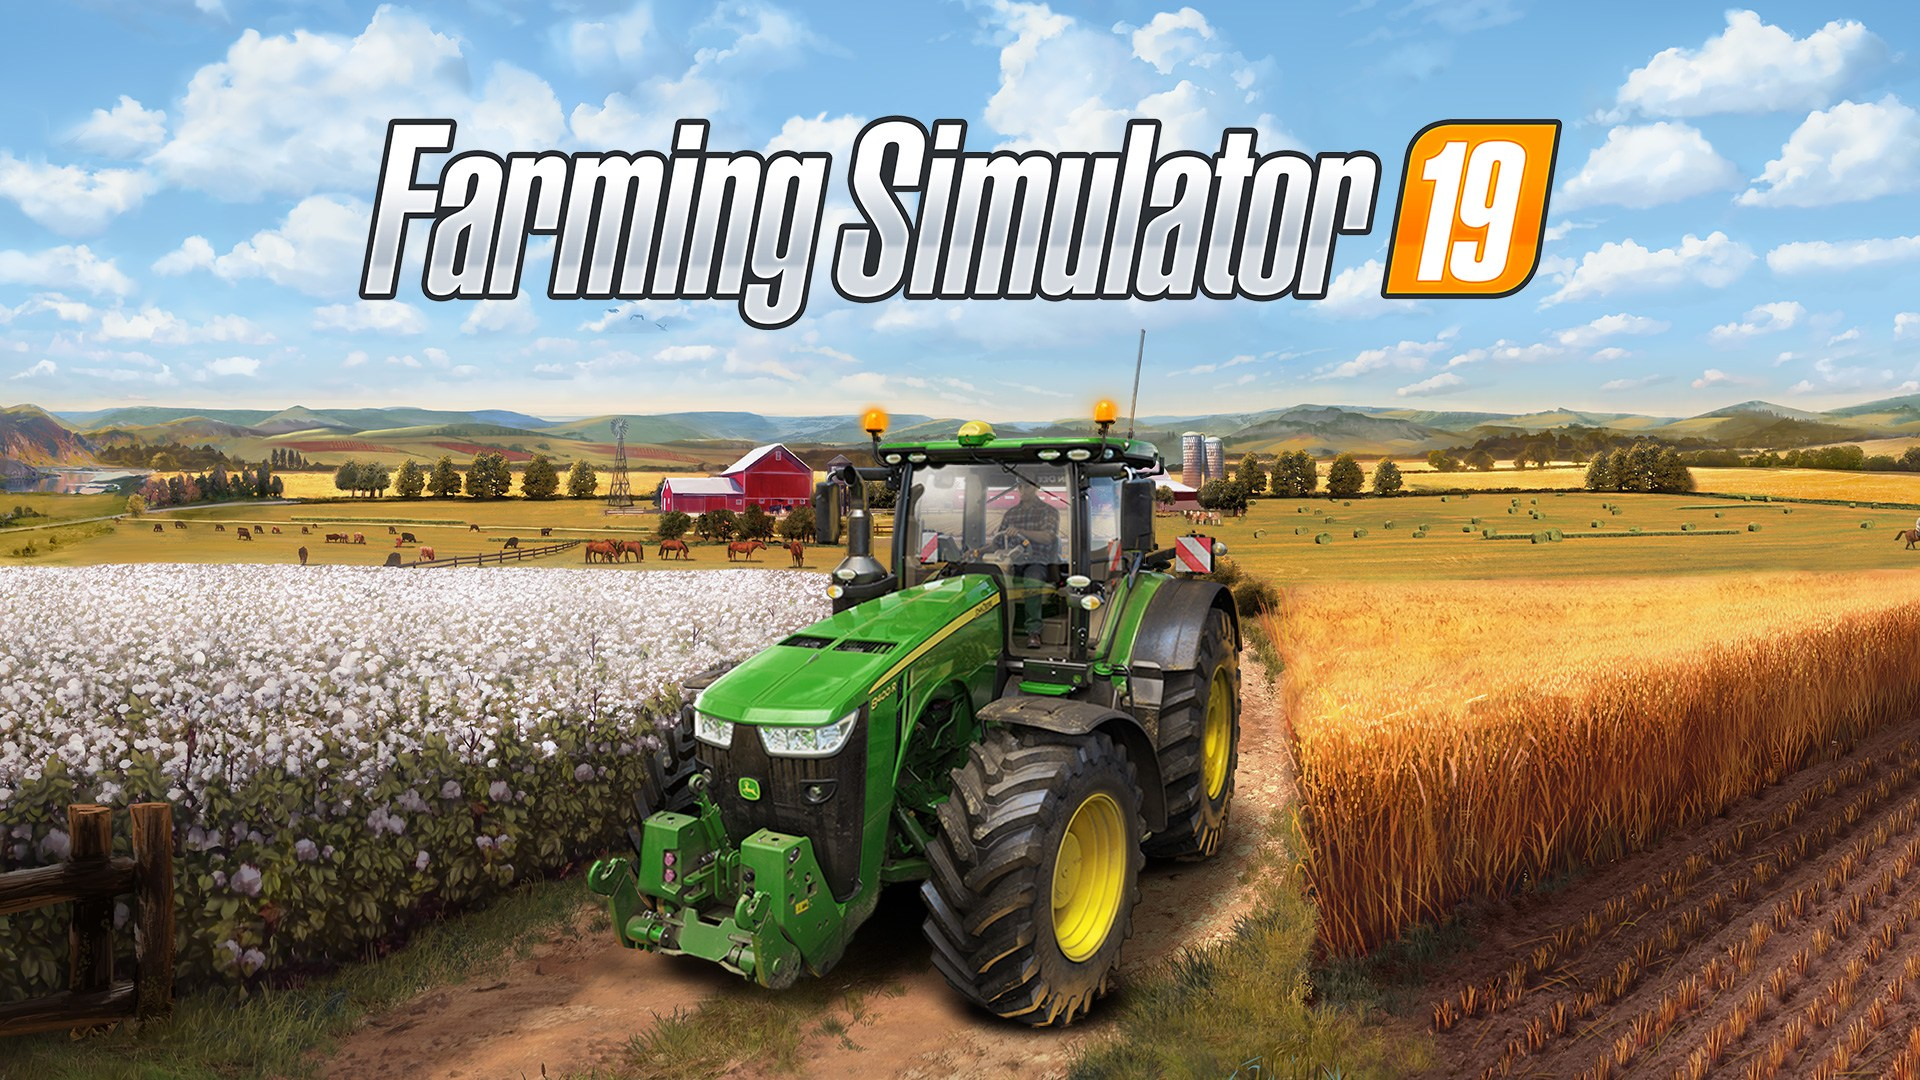 Farming Simulator 19 Wallpapers Backgrounds   Read games review 1920x1080